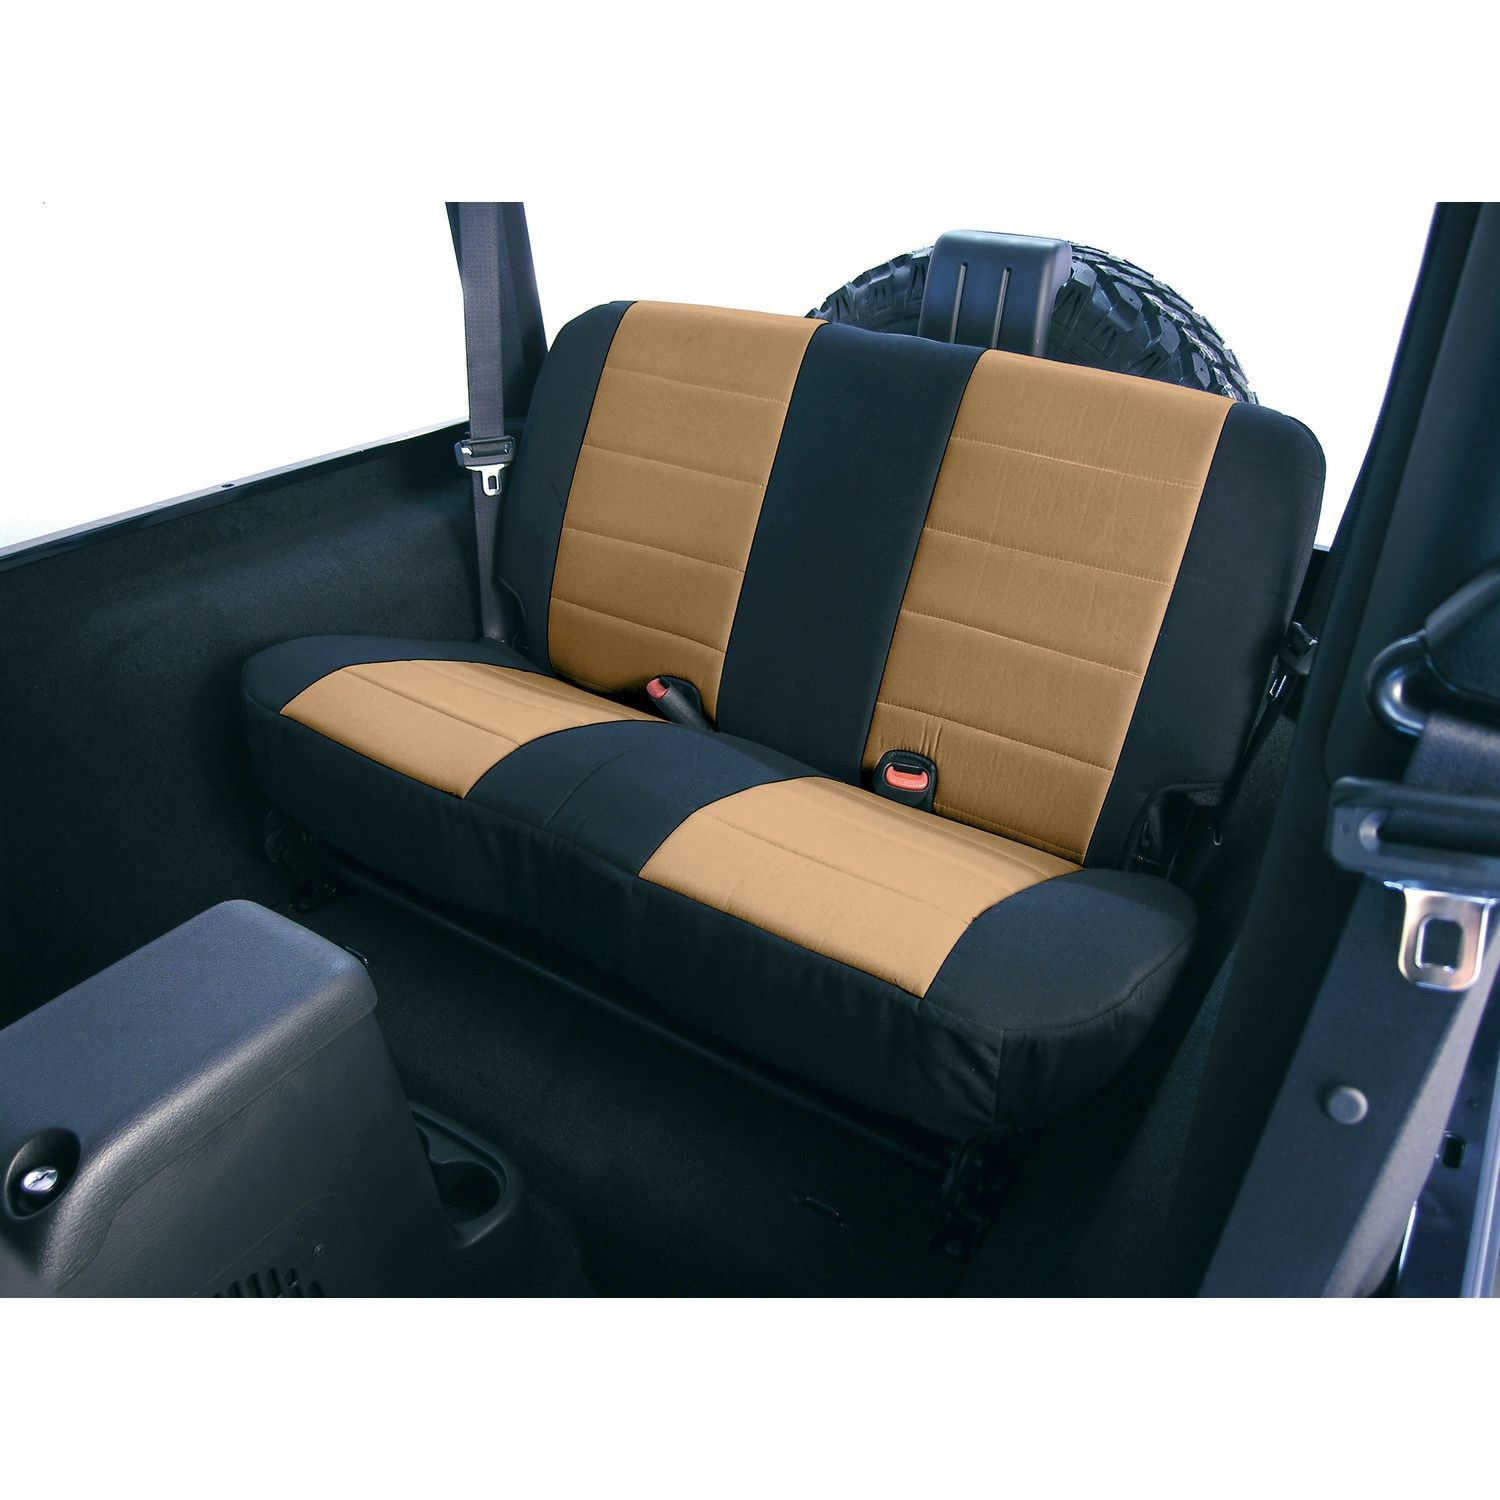 Buy Neoprene Rear Seat Covers Tan 80 95 Jeep CJ Wrangler YJ At Get4x4Parts For Only 17694